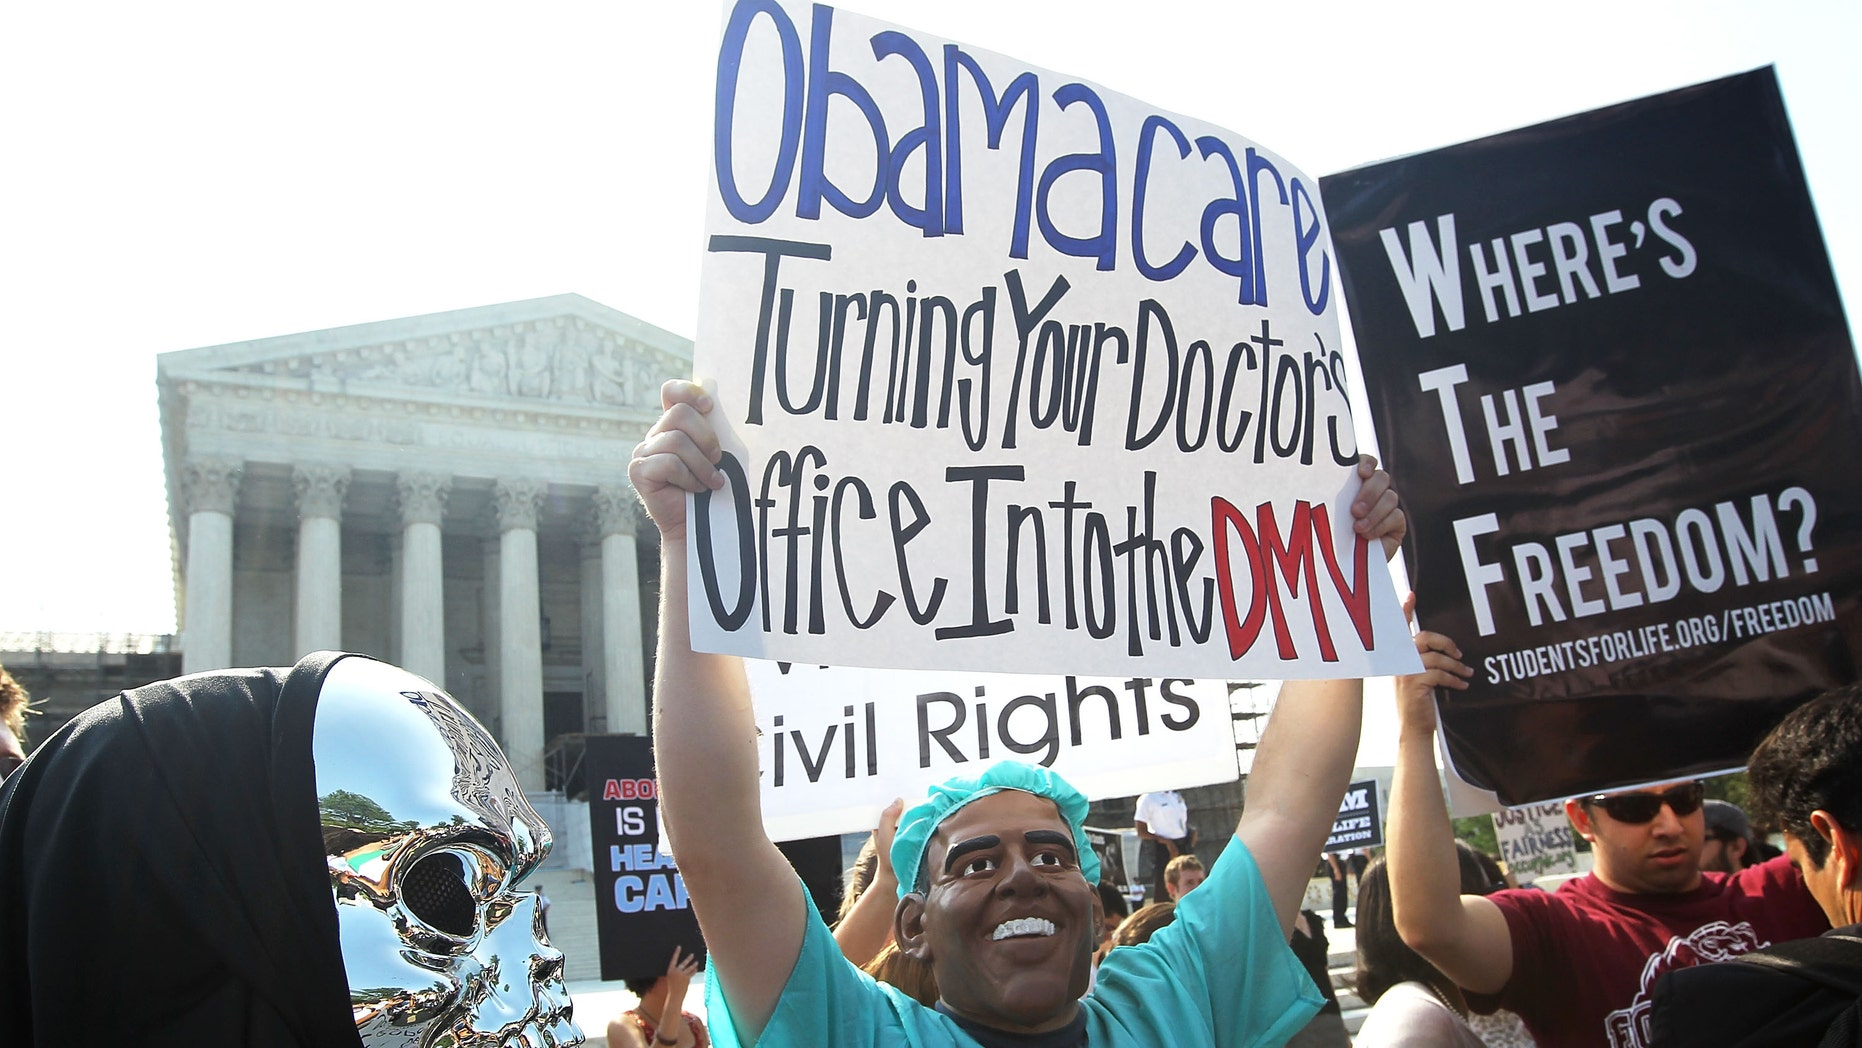 WASHINGTON, DC - JUNE 28:  Anti-Obamacare protesters wear masks of U.S. President Barack Obama and Grim Reaper as they demonstrate in front of the U.S. Supreme Court June 28, 2012 in Washington, DC. The Supreme Court is expected to hand down its ruling on the Affordable Healthcare Act this morning.  (Photo by Alex Wong/Getty Images)